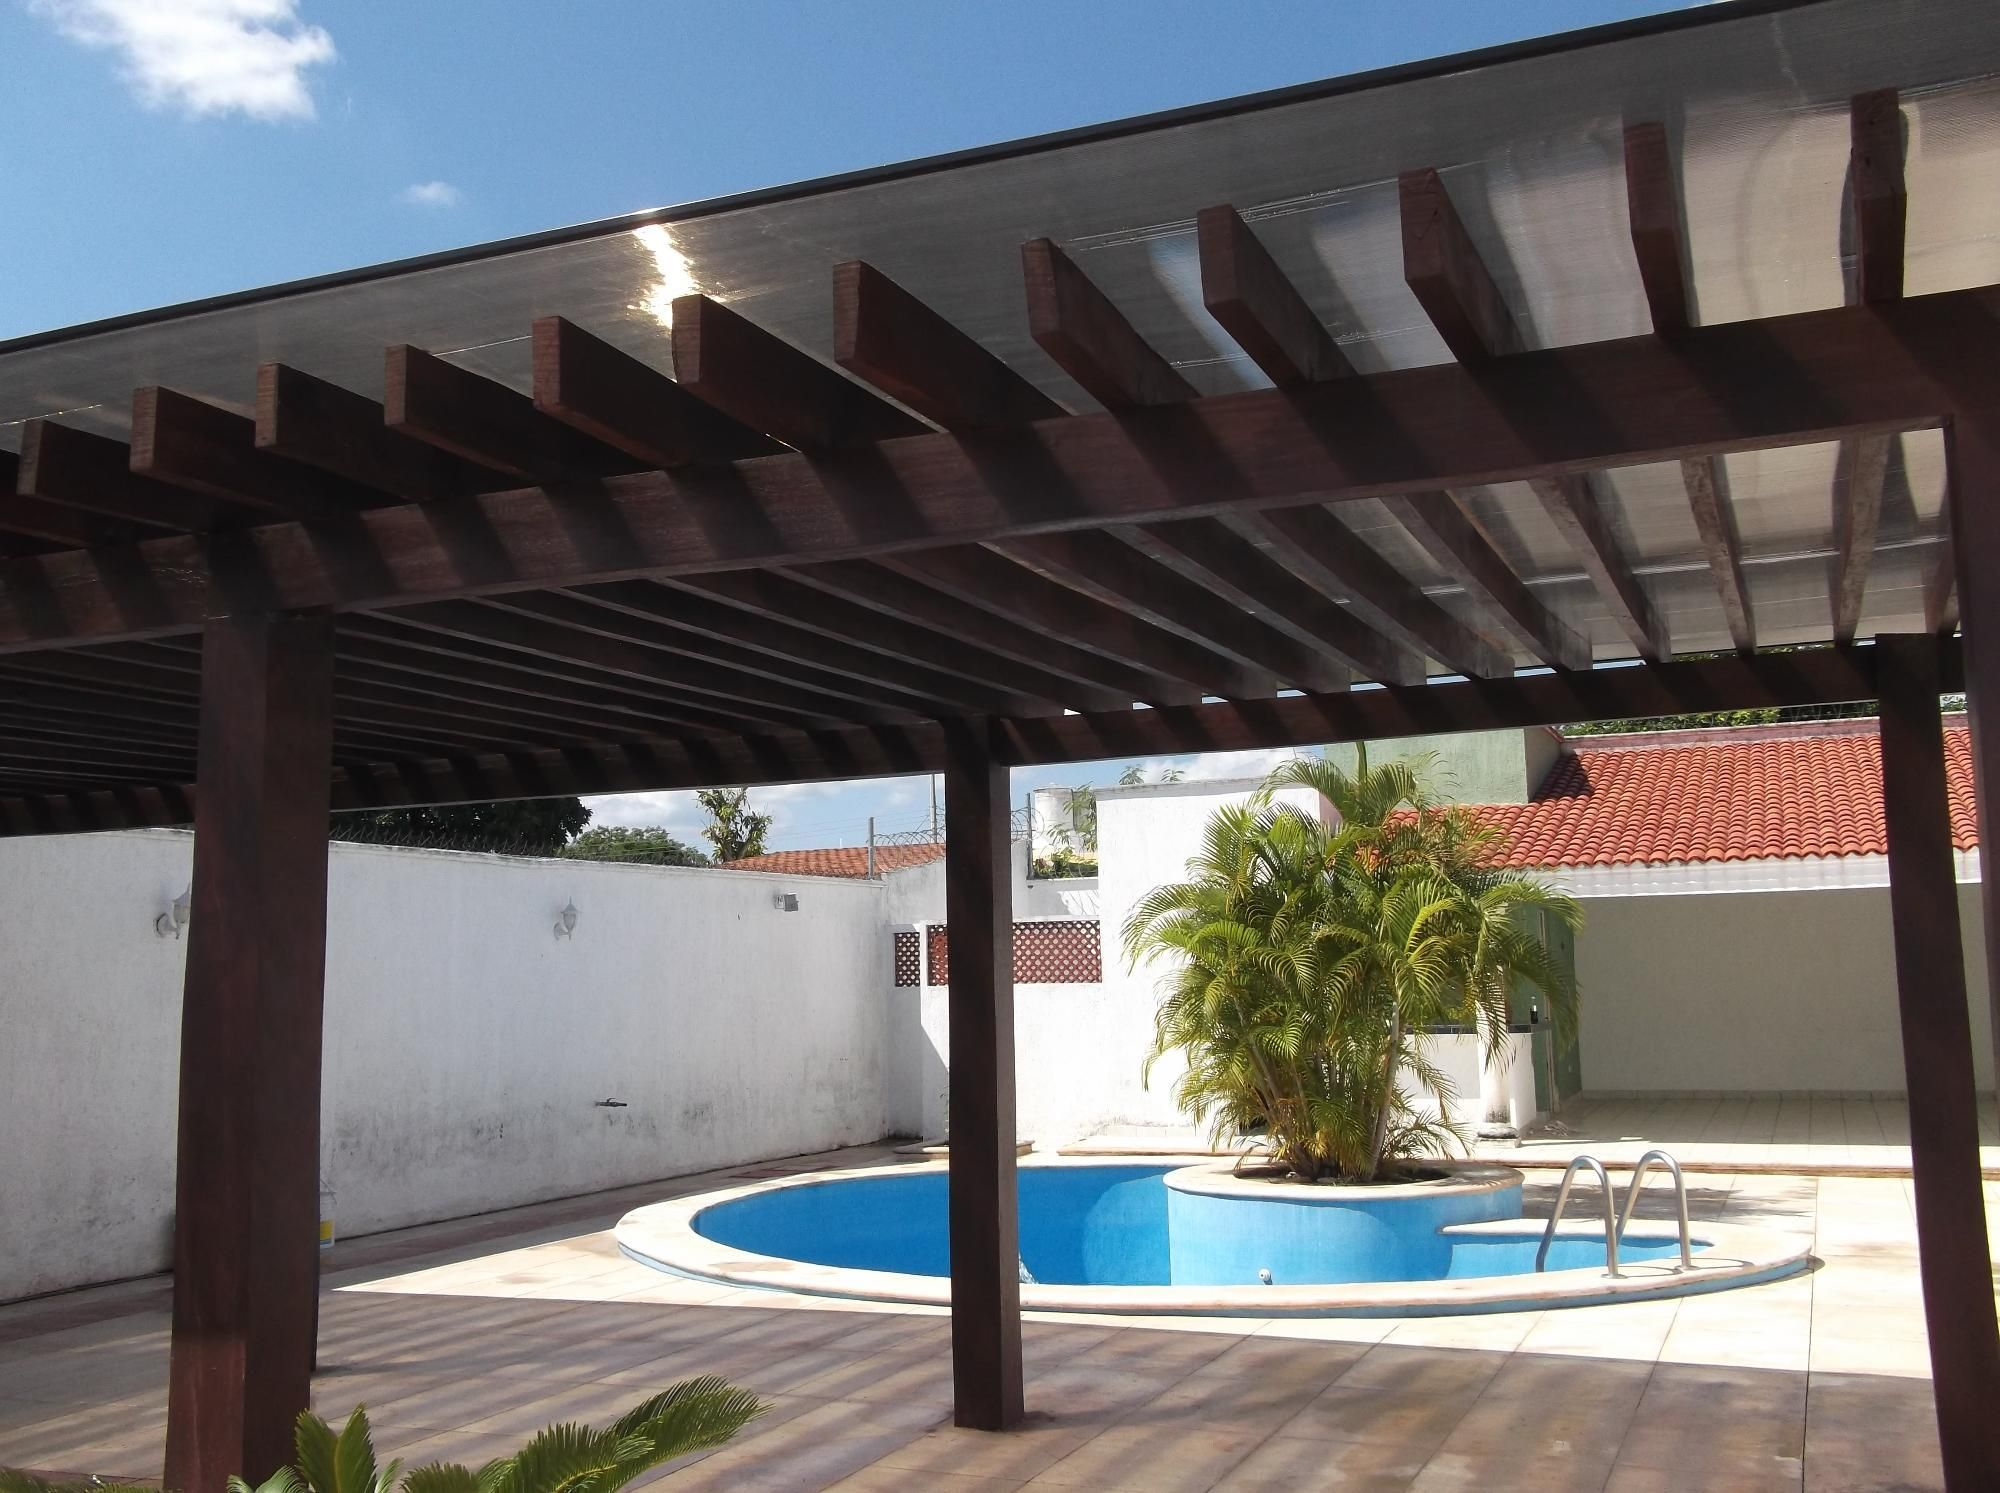 Techos de policarbonato outdoor ideas for the dream - Techos de pergolas ...